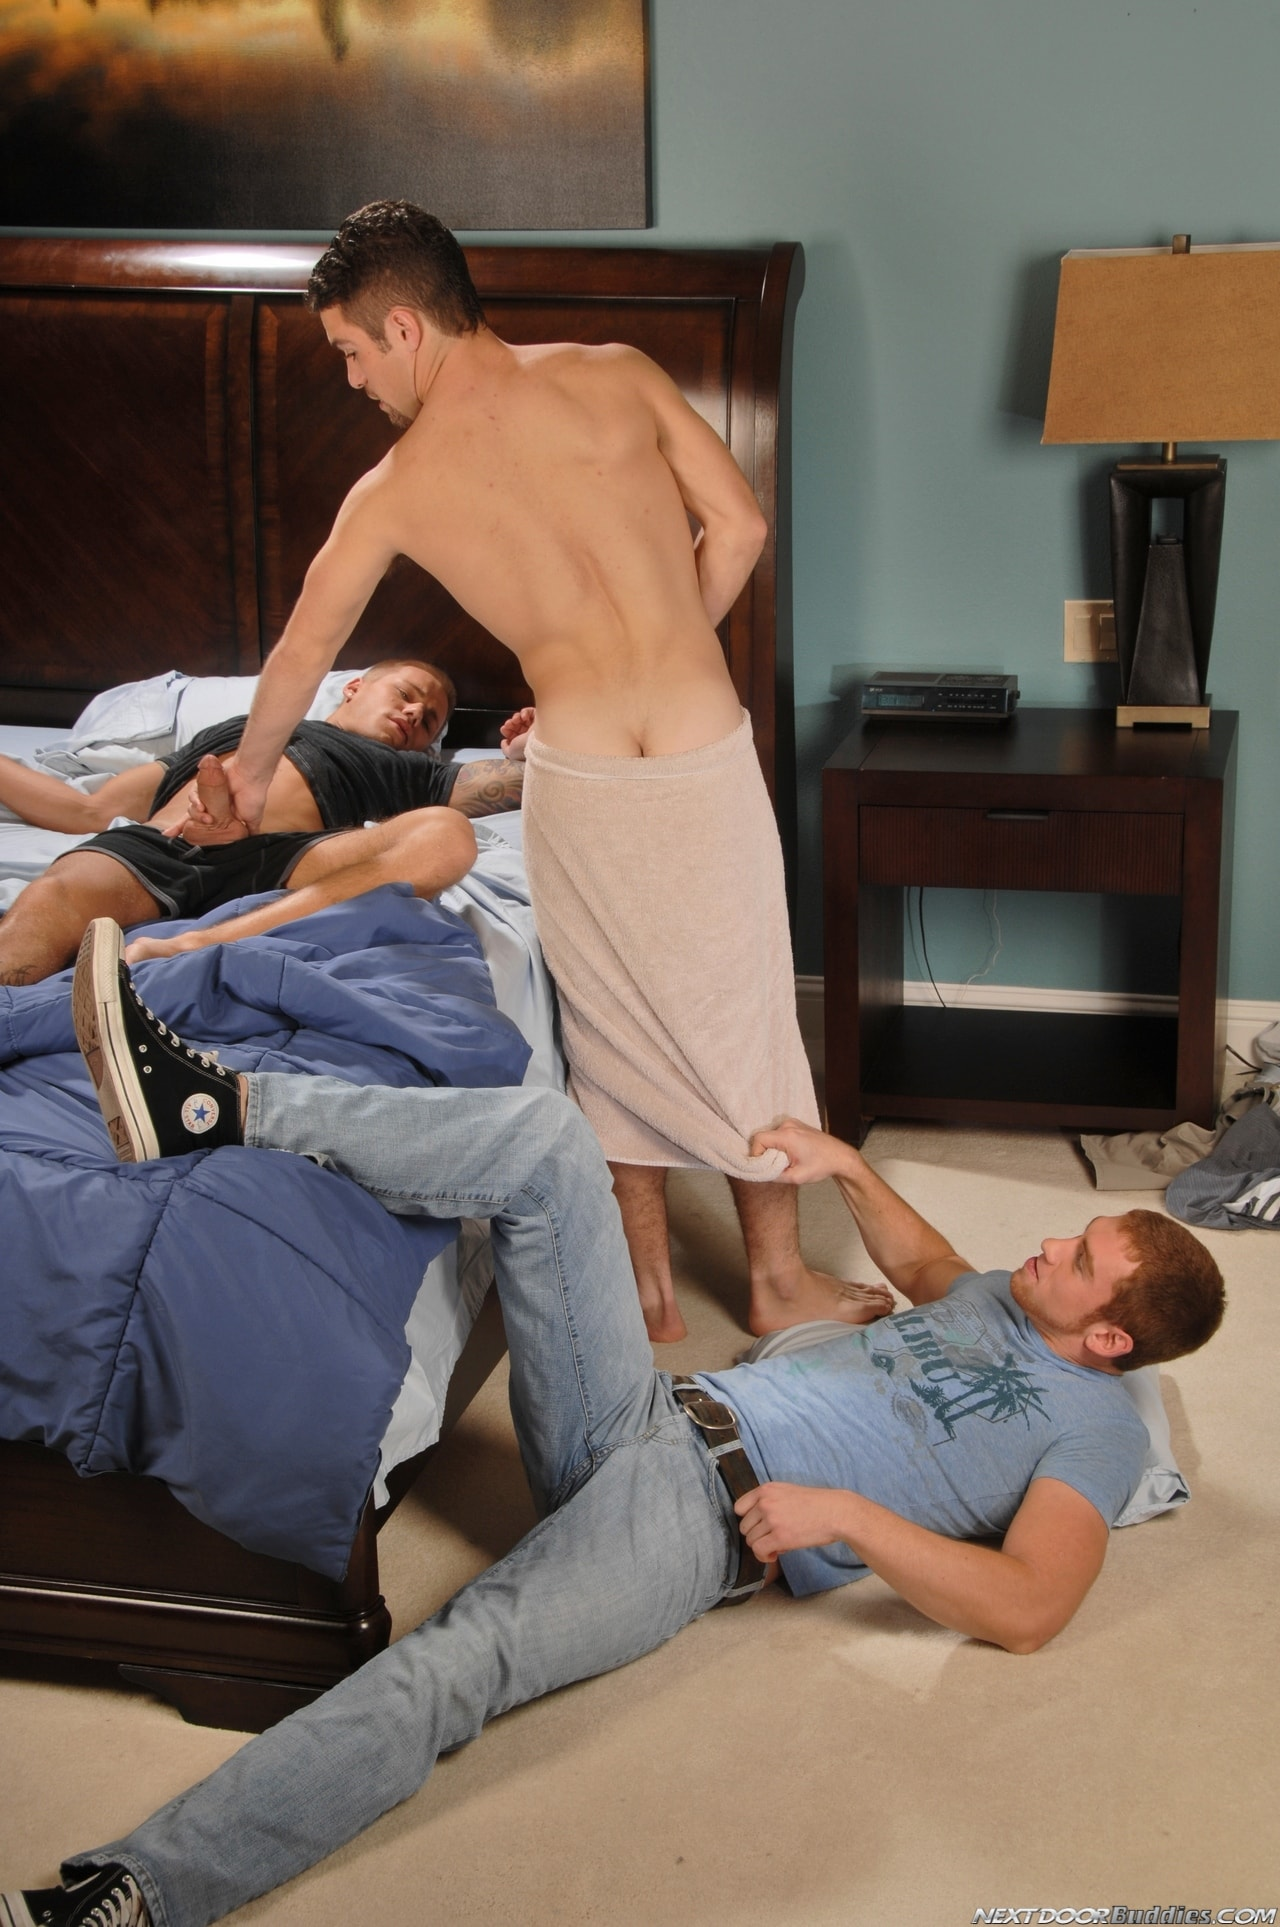 Next Door Studios 'Best Friends Do It Best' starring Brody Wilder (Photo 4)